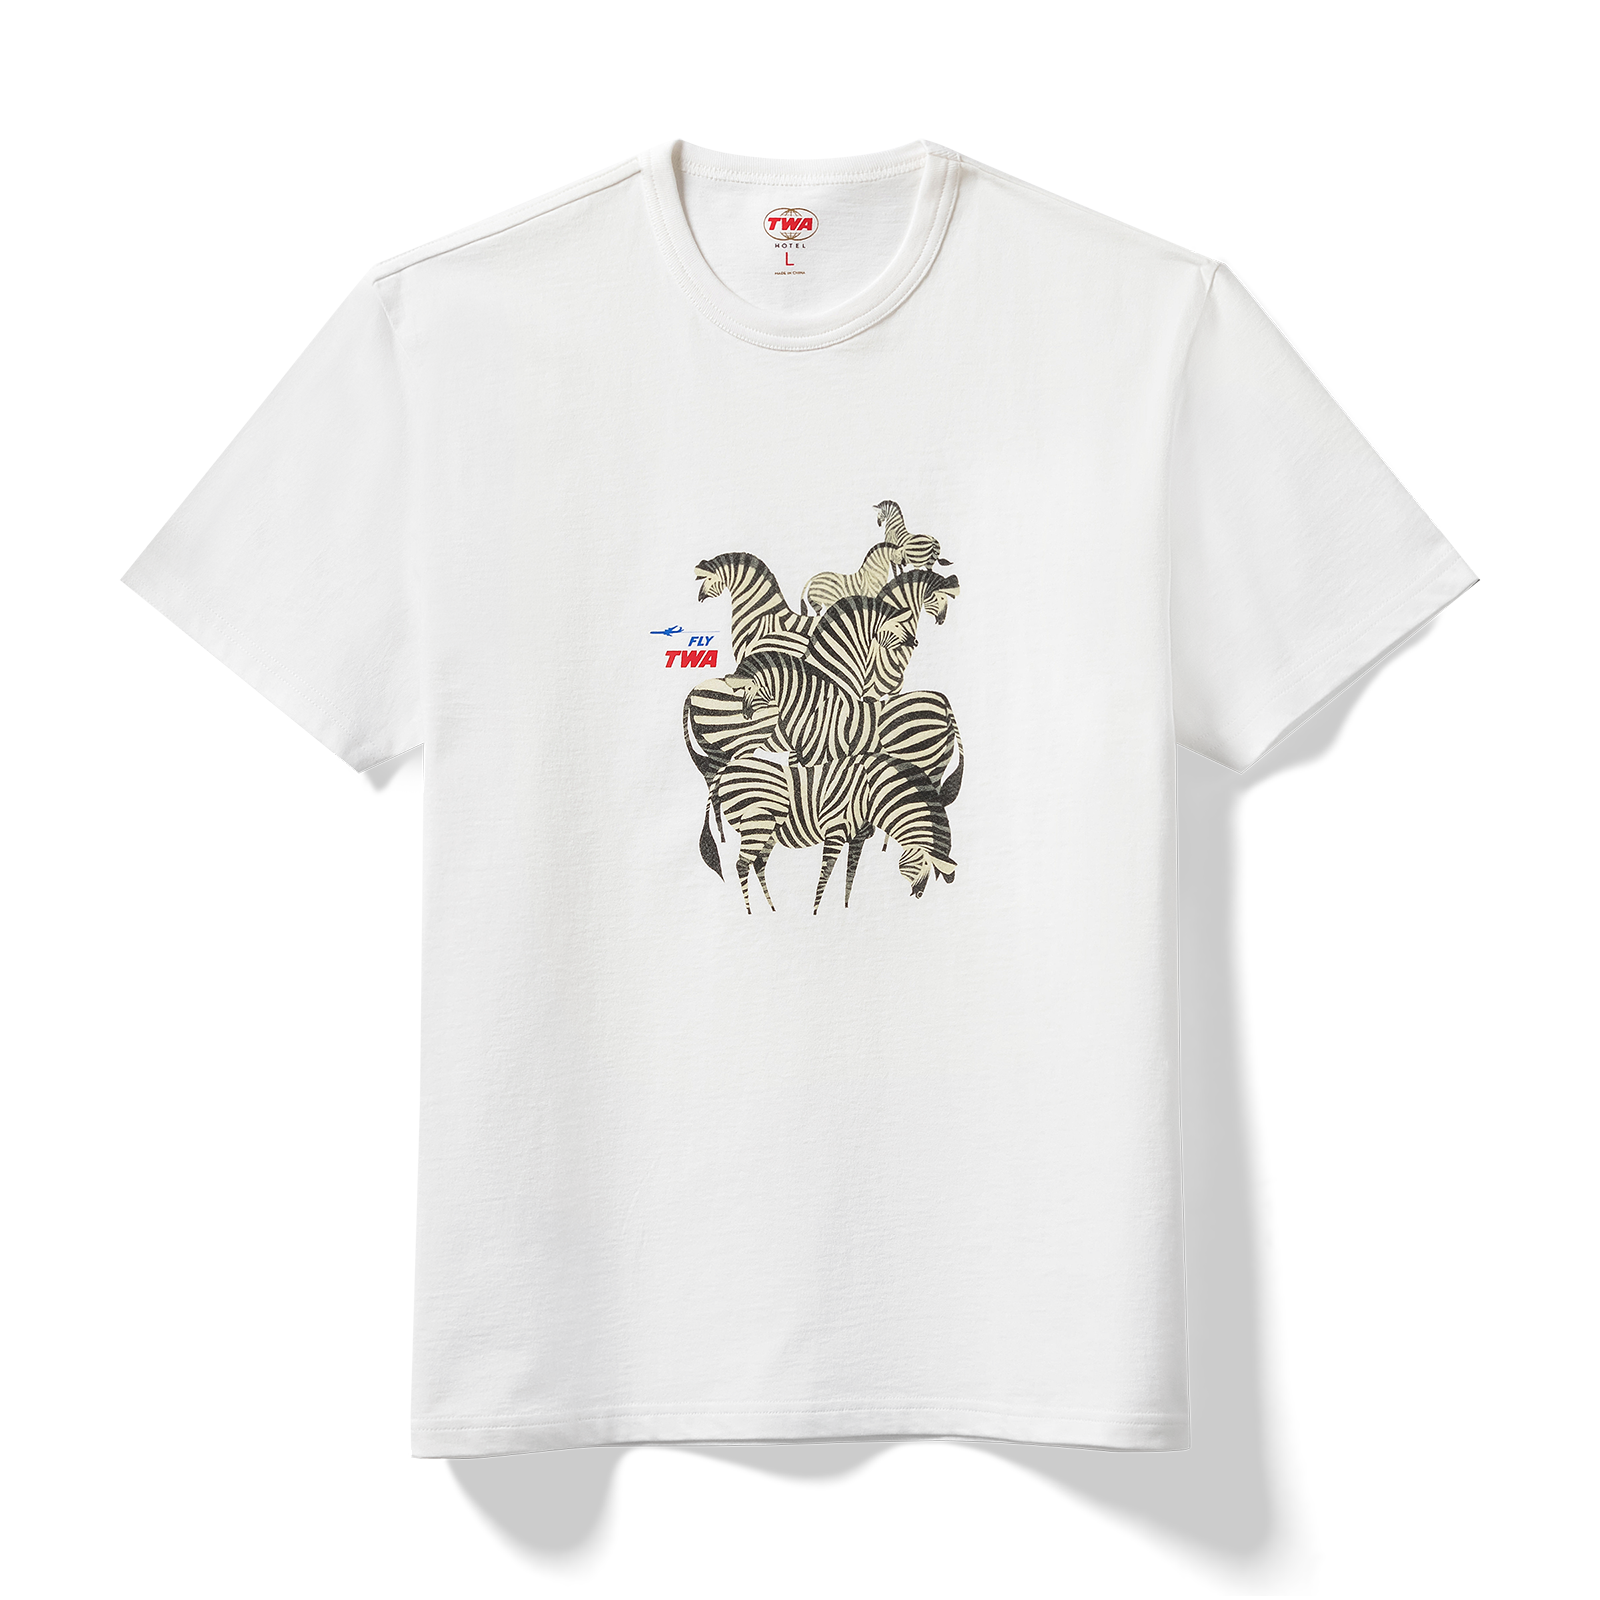 Pinned t-shirt product photo